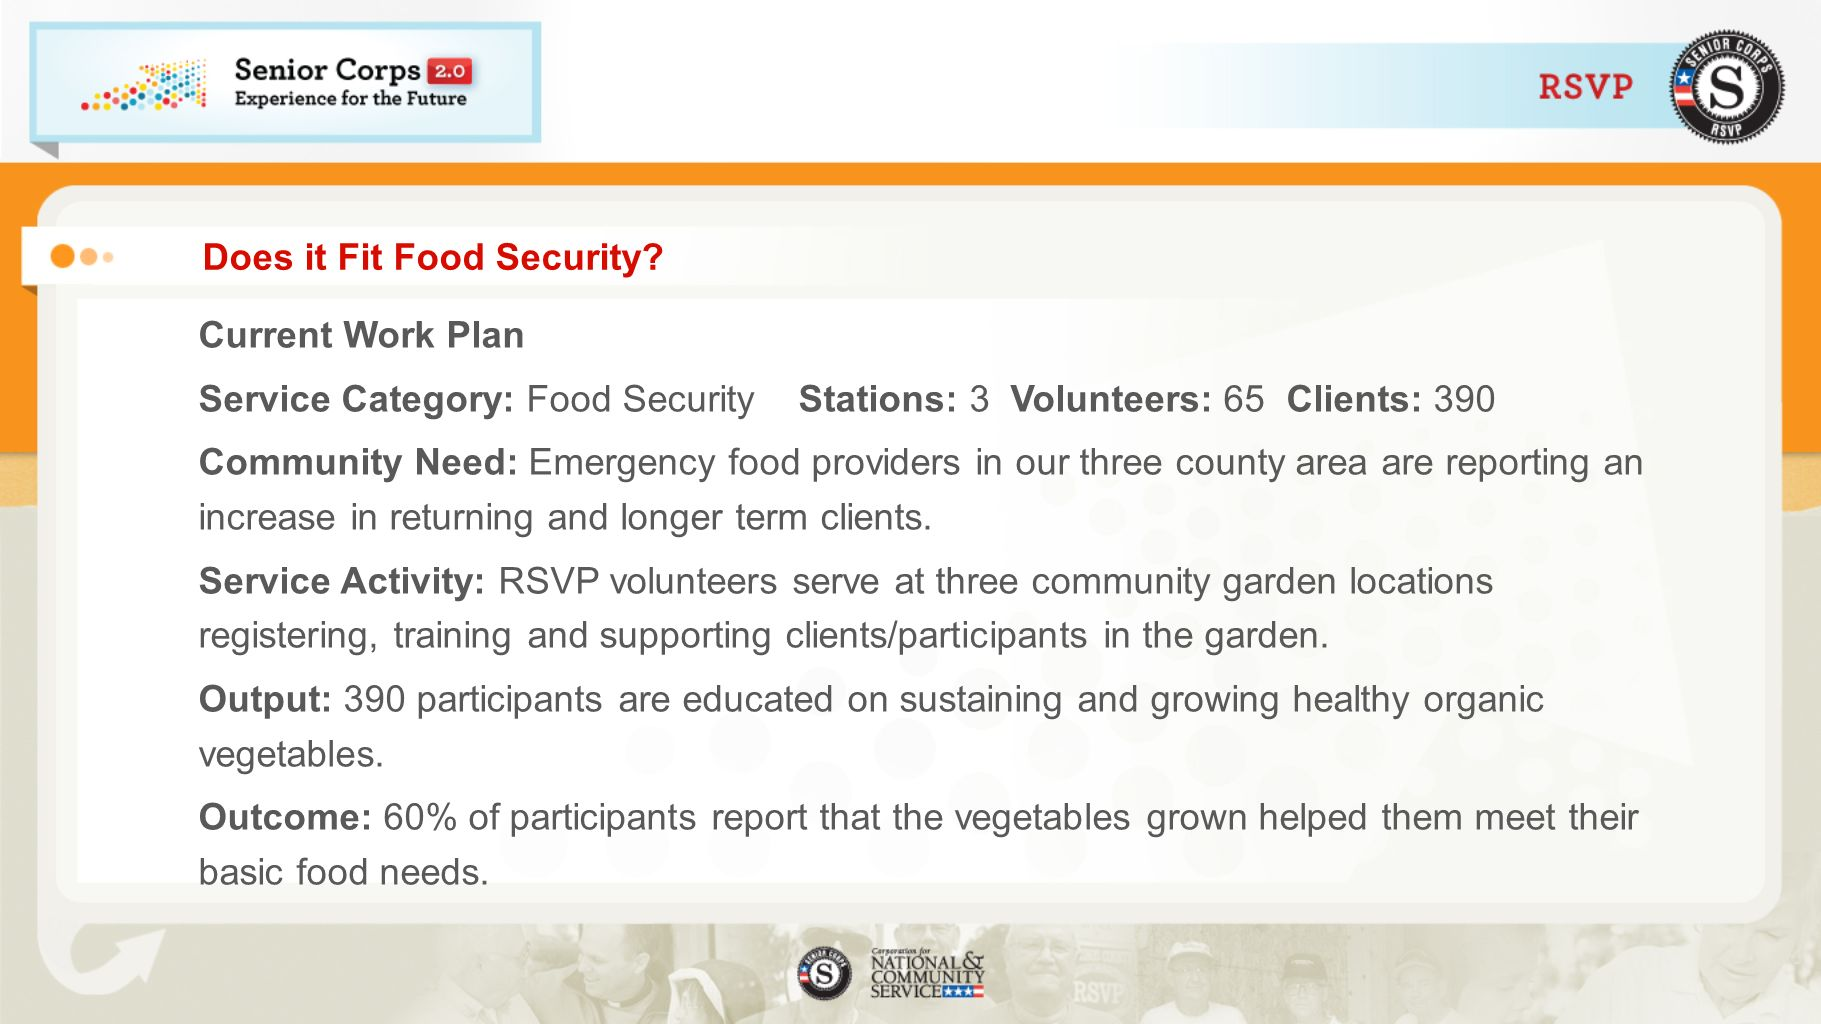 Does it Fit Food Security